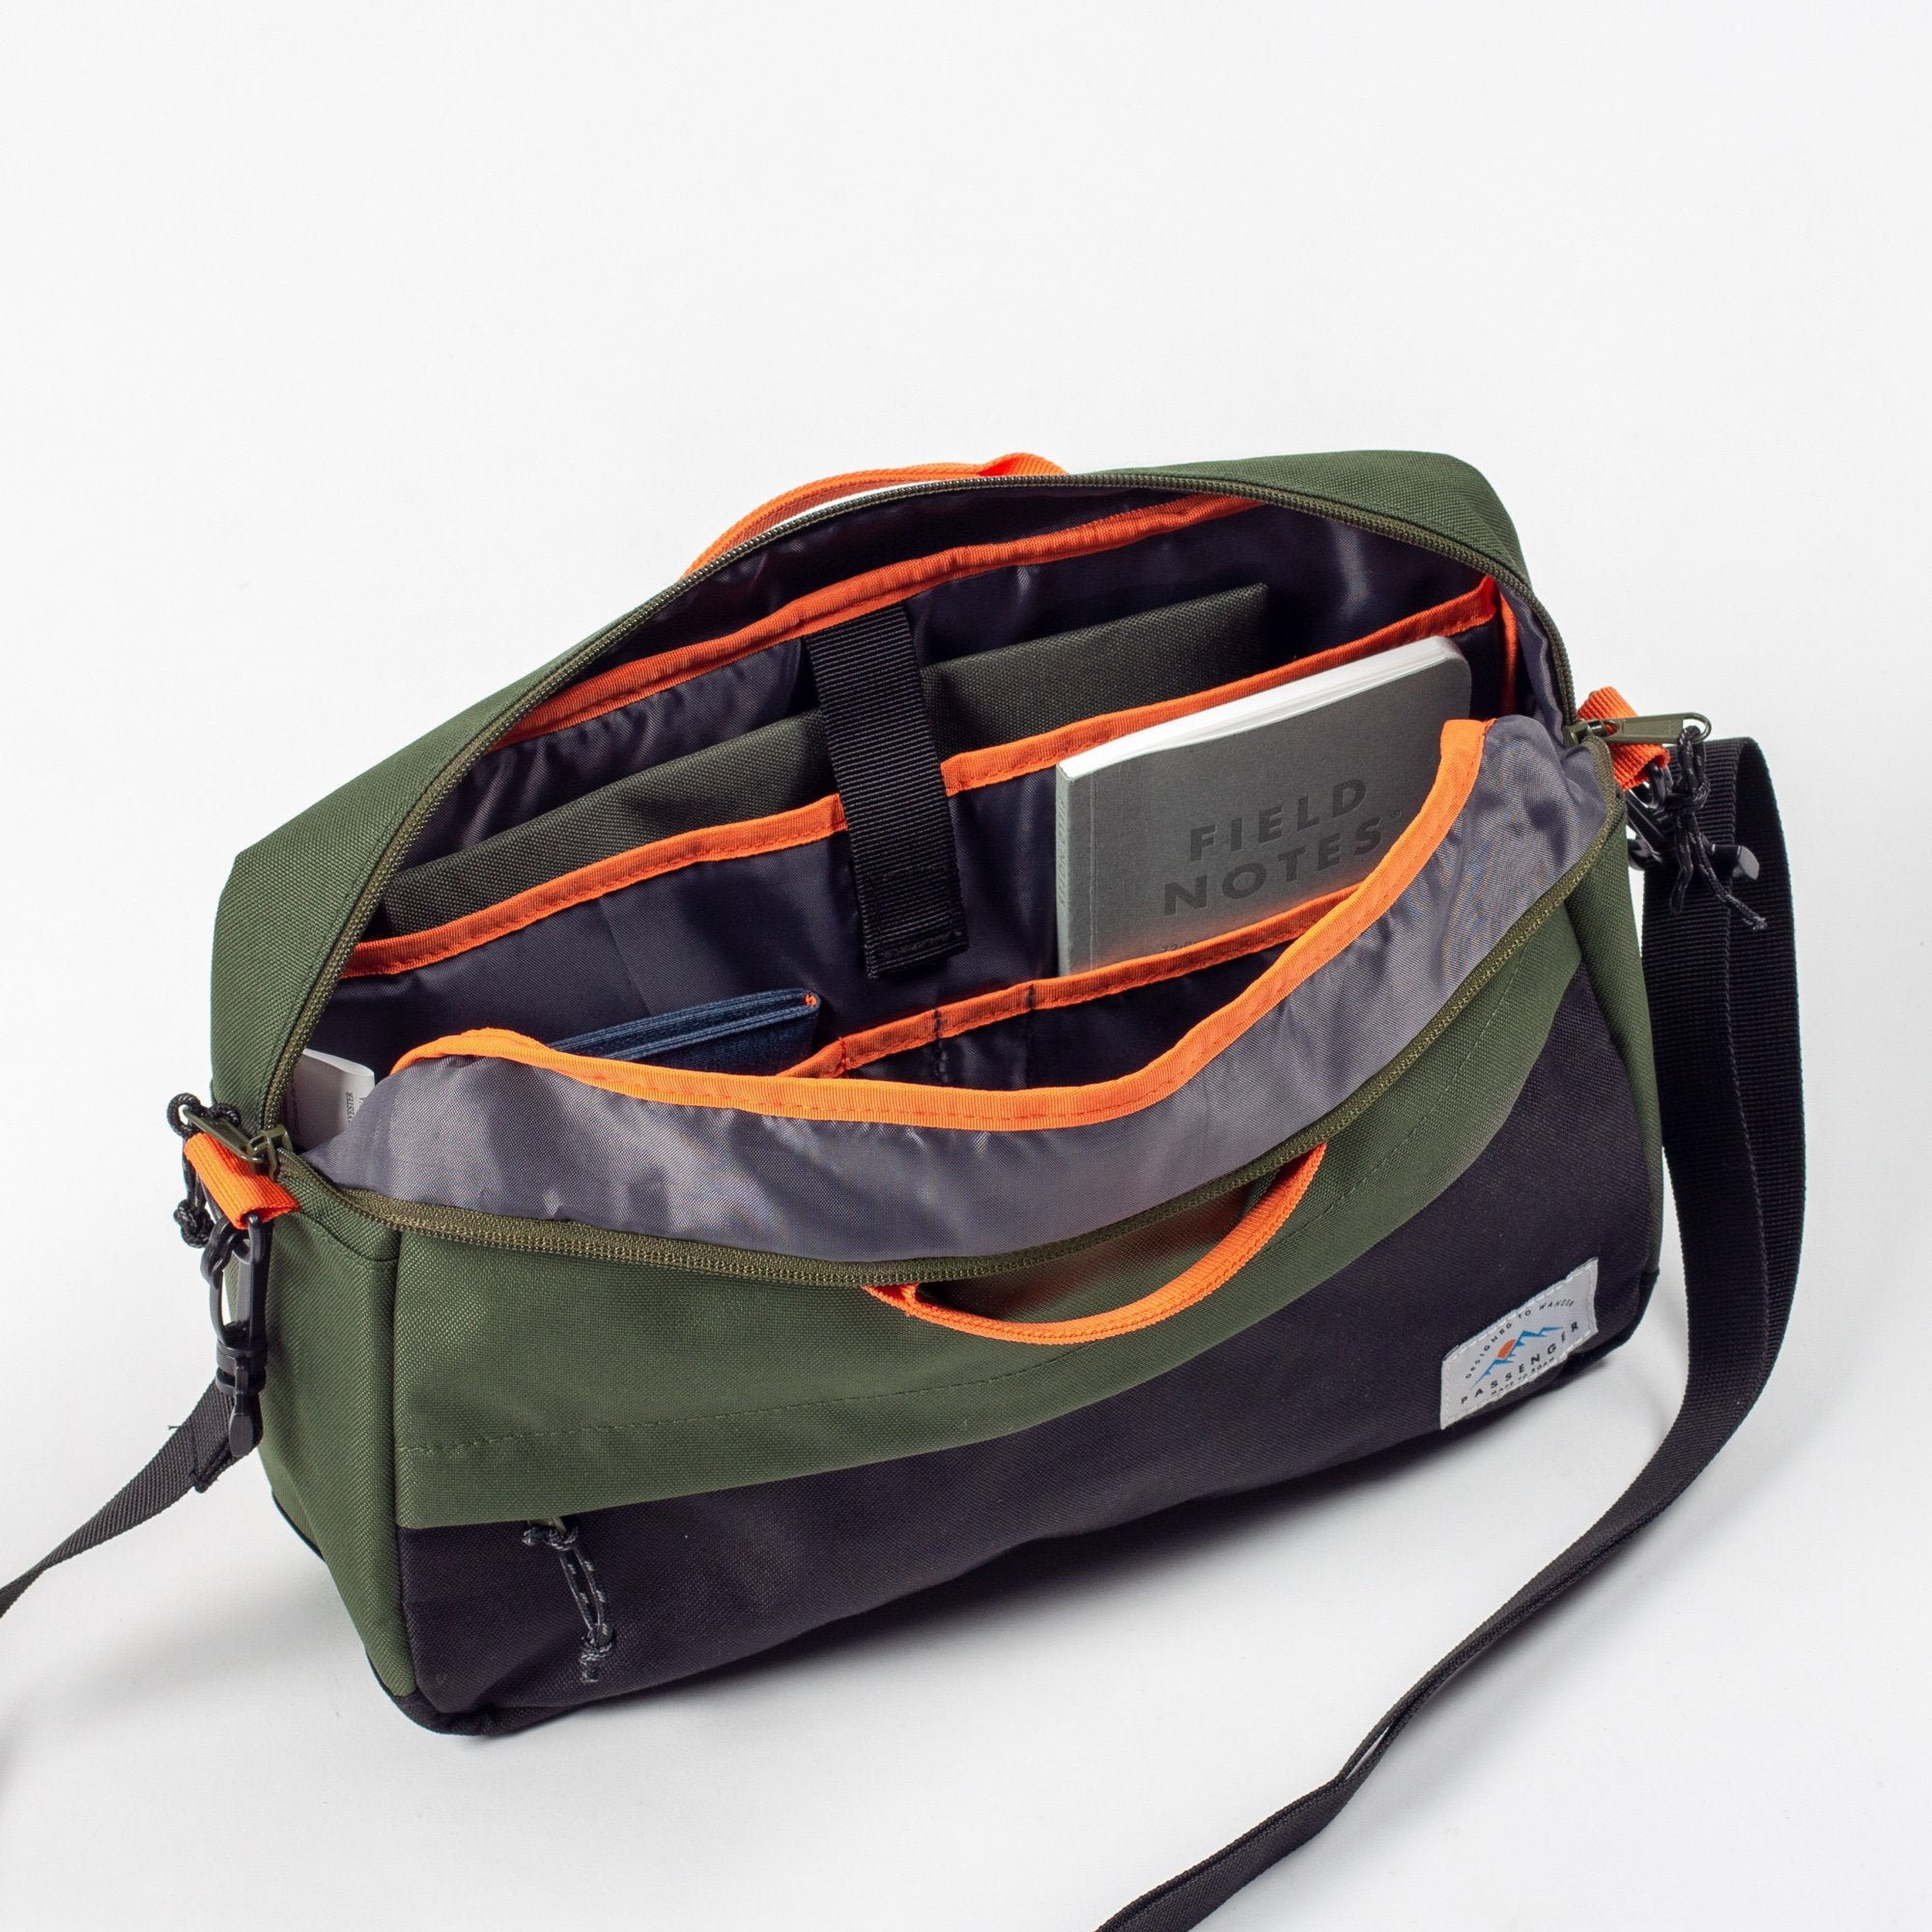 Ranger Essentials Pack - Olive/Black image 6